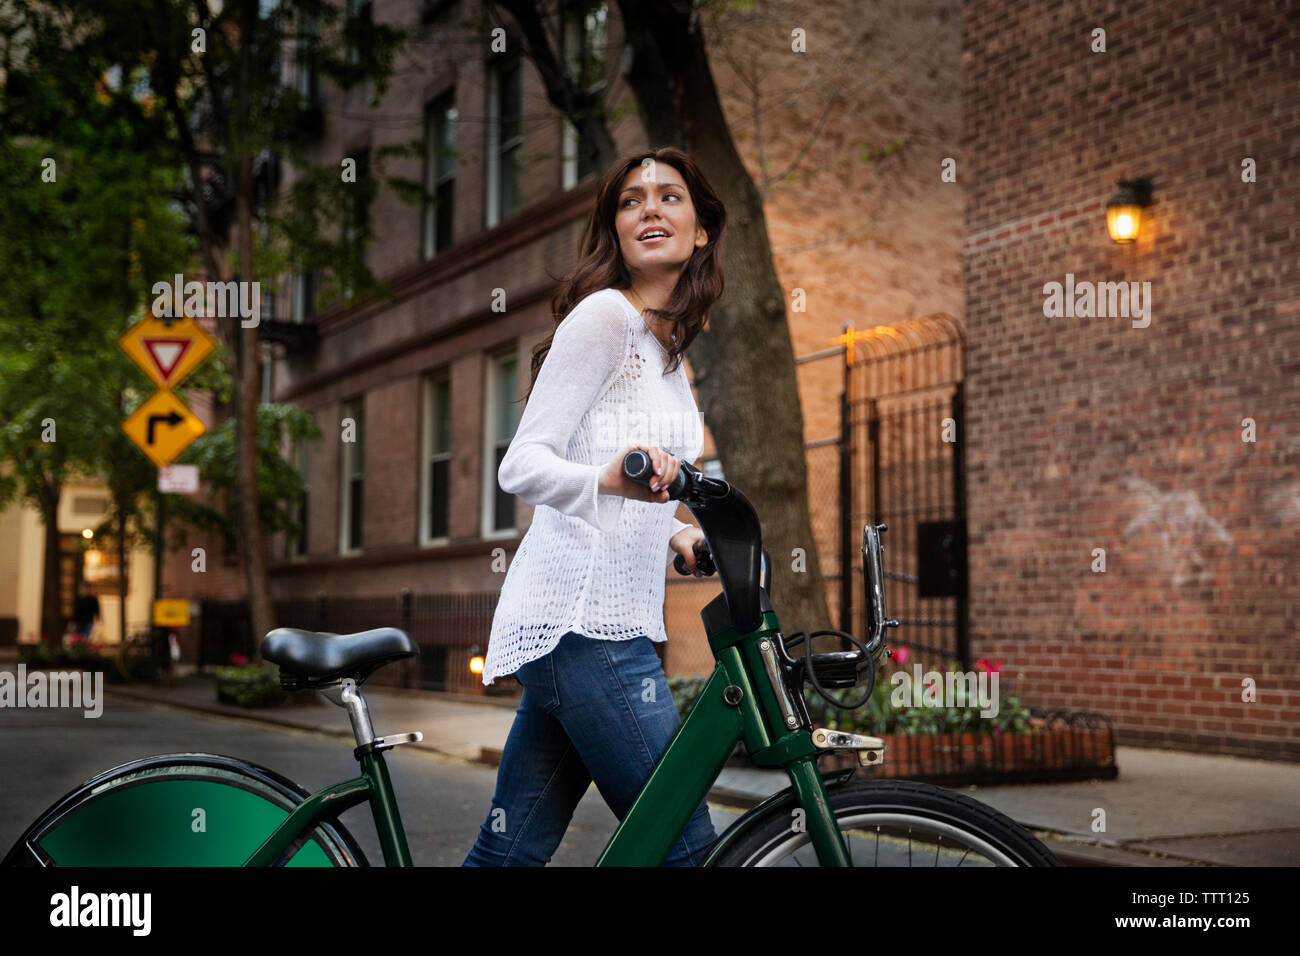 Young woman walking with bicycle on street Stock Photo